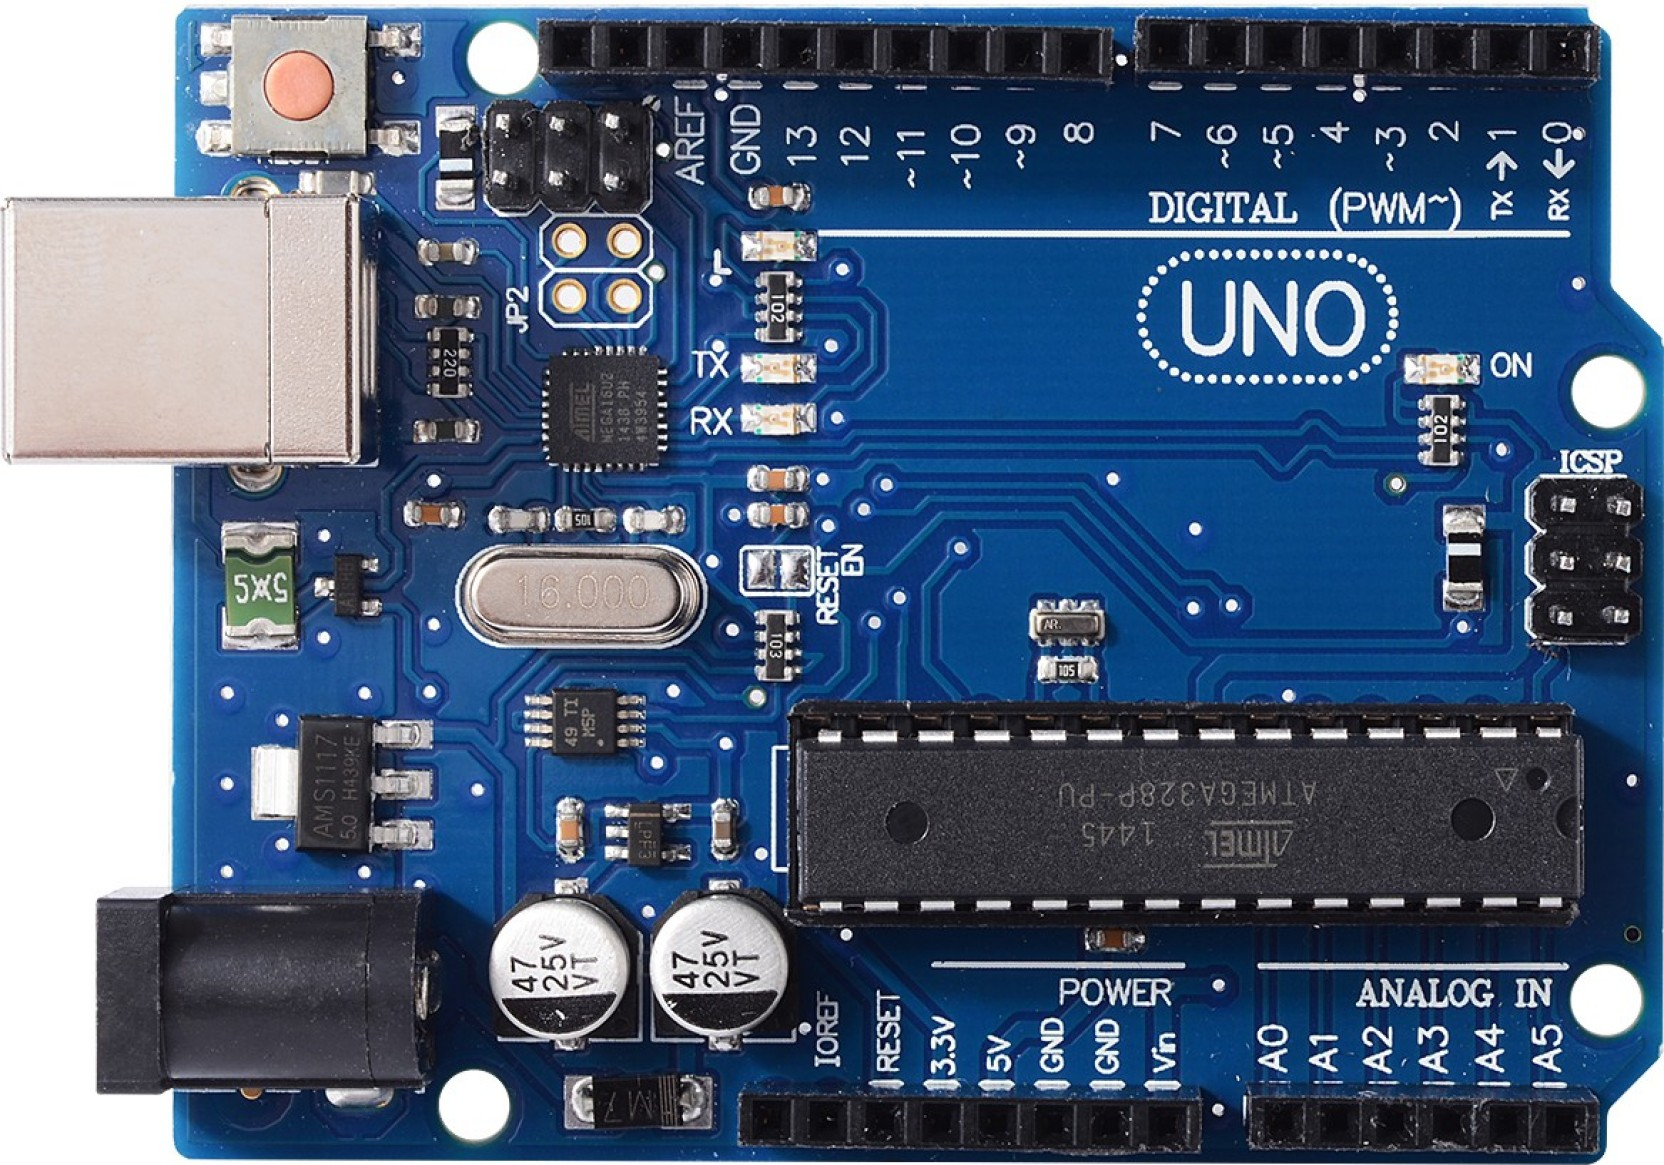 Diy Ecraft Arduino Uno R3 Price In India Buy Atmega328p 16u2 Dip Usb Cable Programming Add To Cart